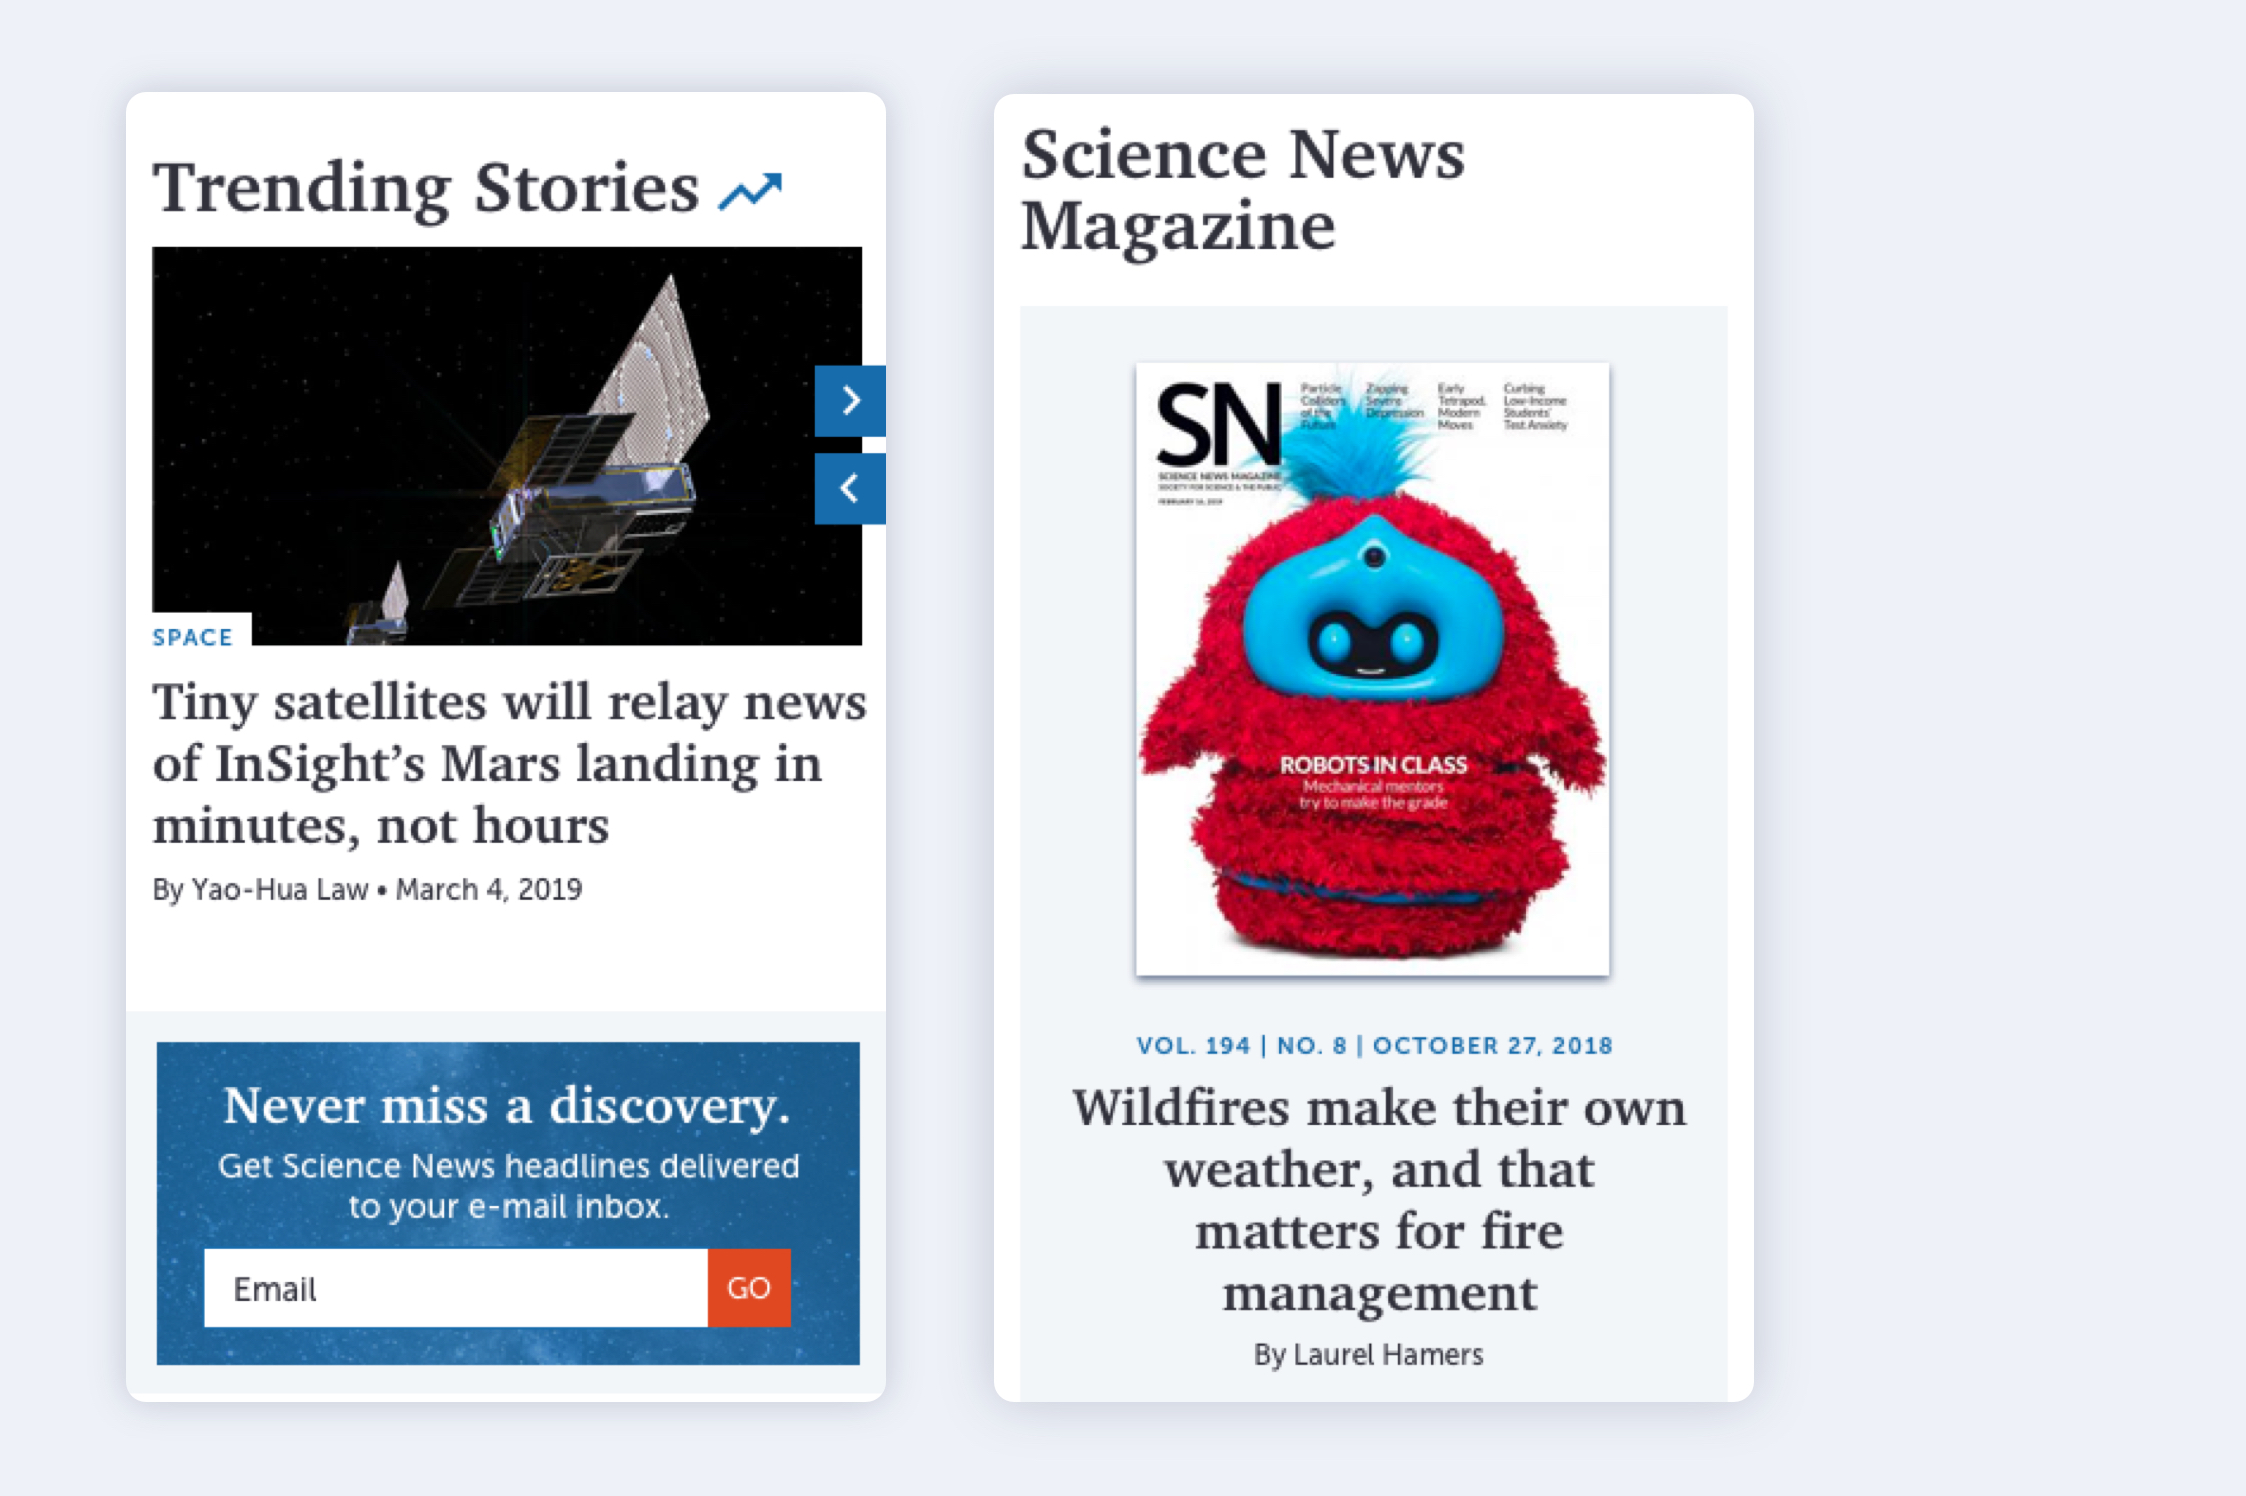 Two mobile views of the site, one with Trending Stories, a large image and headline, and a blue email subscribe callout, and the other the magazine front cover and top headline